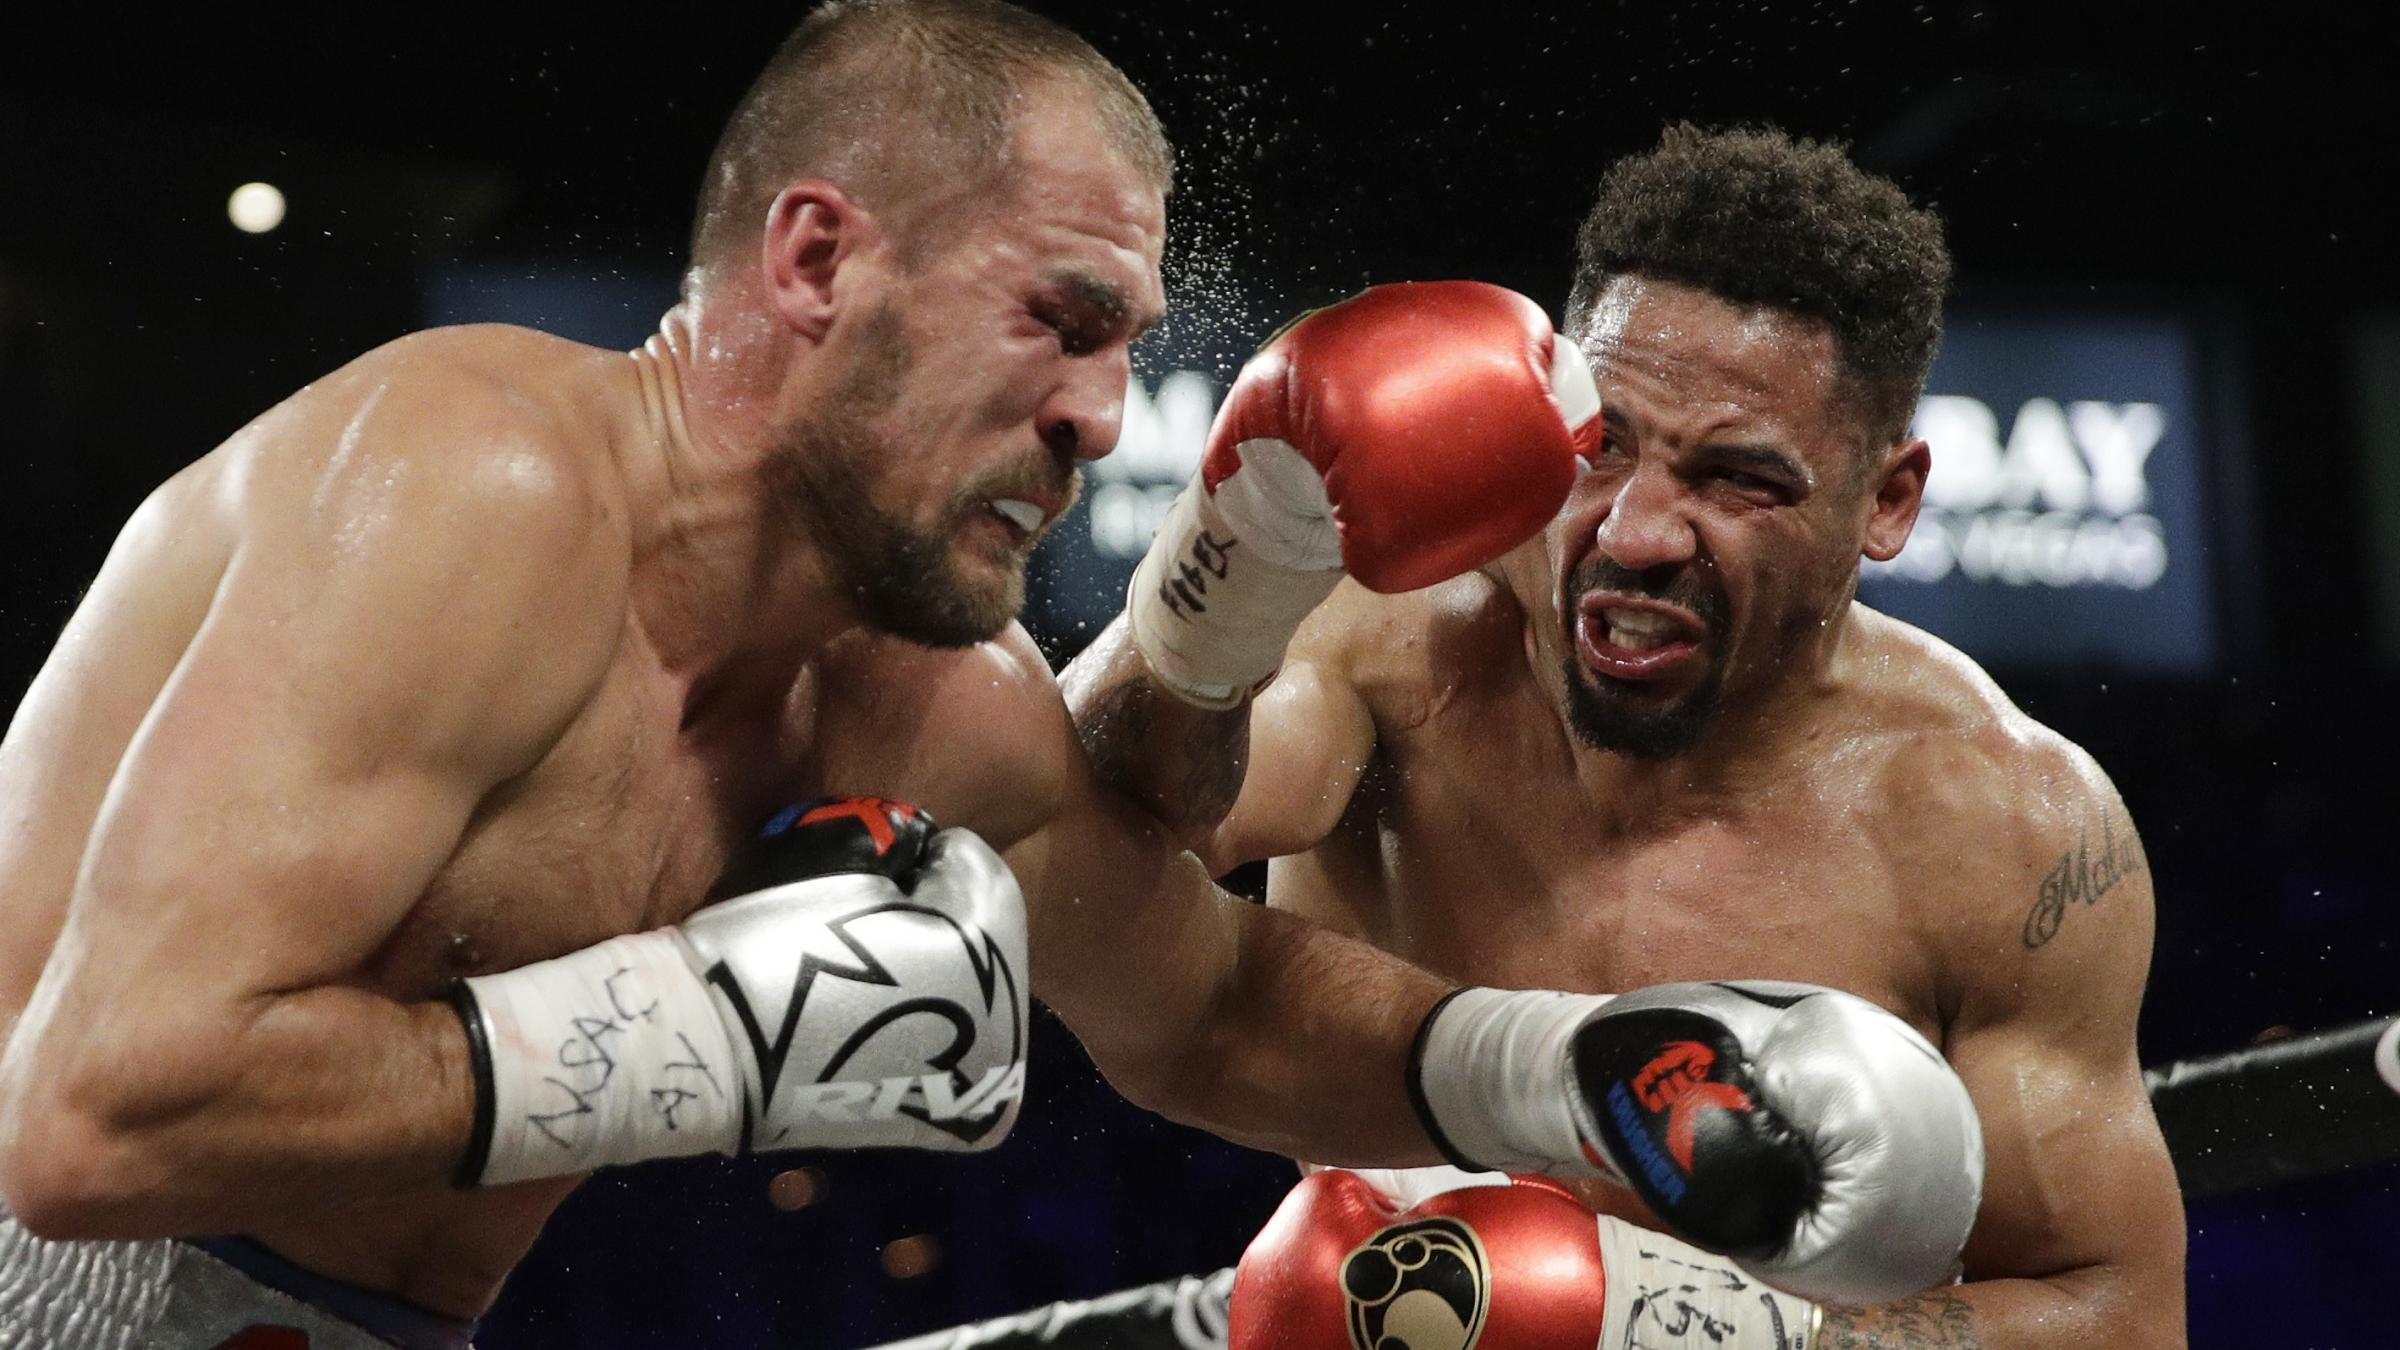 Andre Ward stops Sergey Kovalev to win light heavy rematch